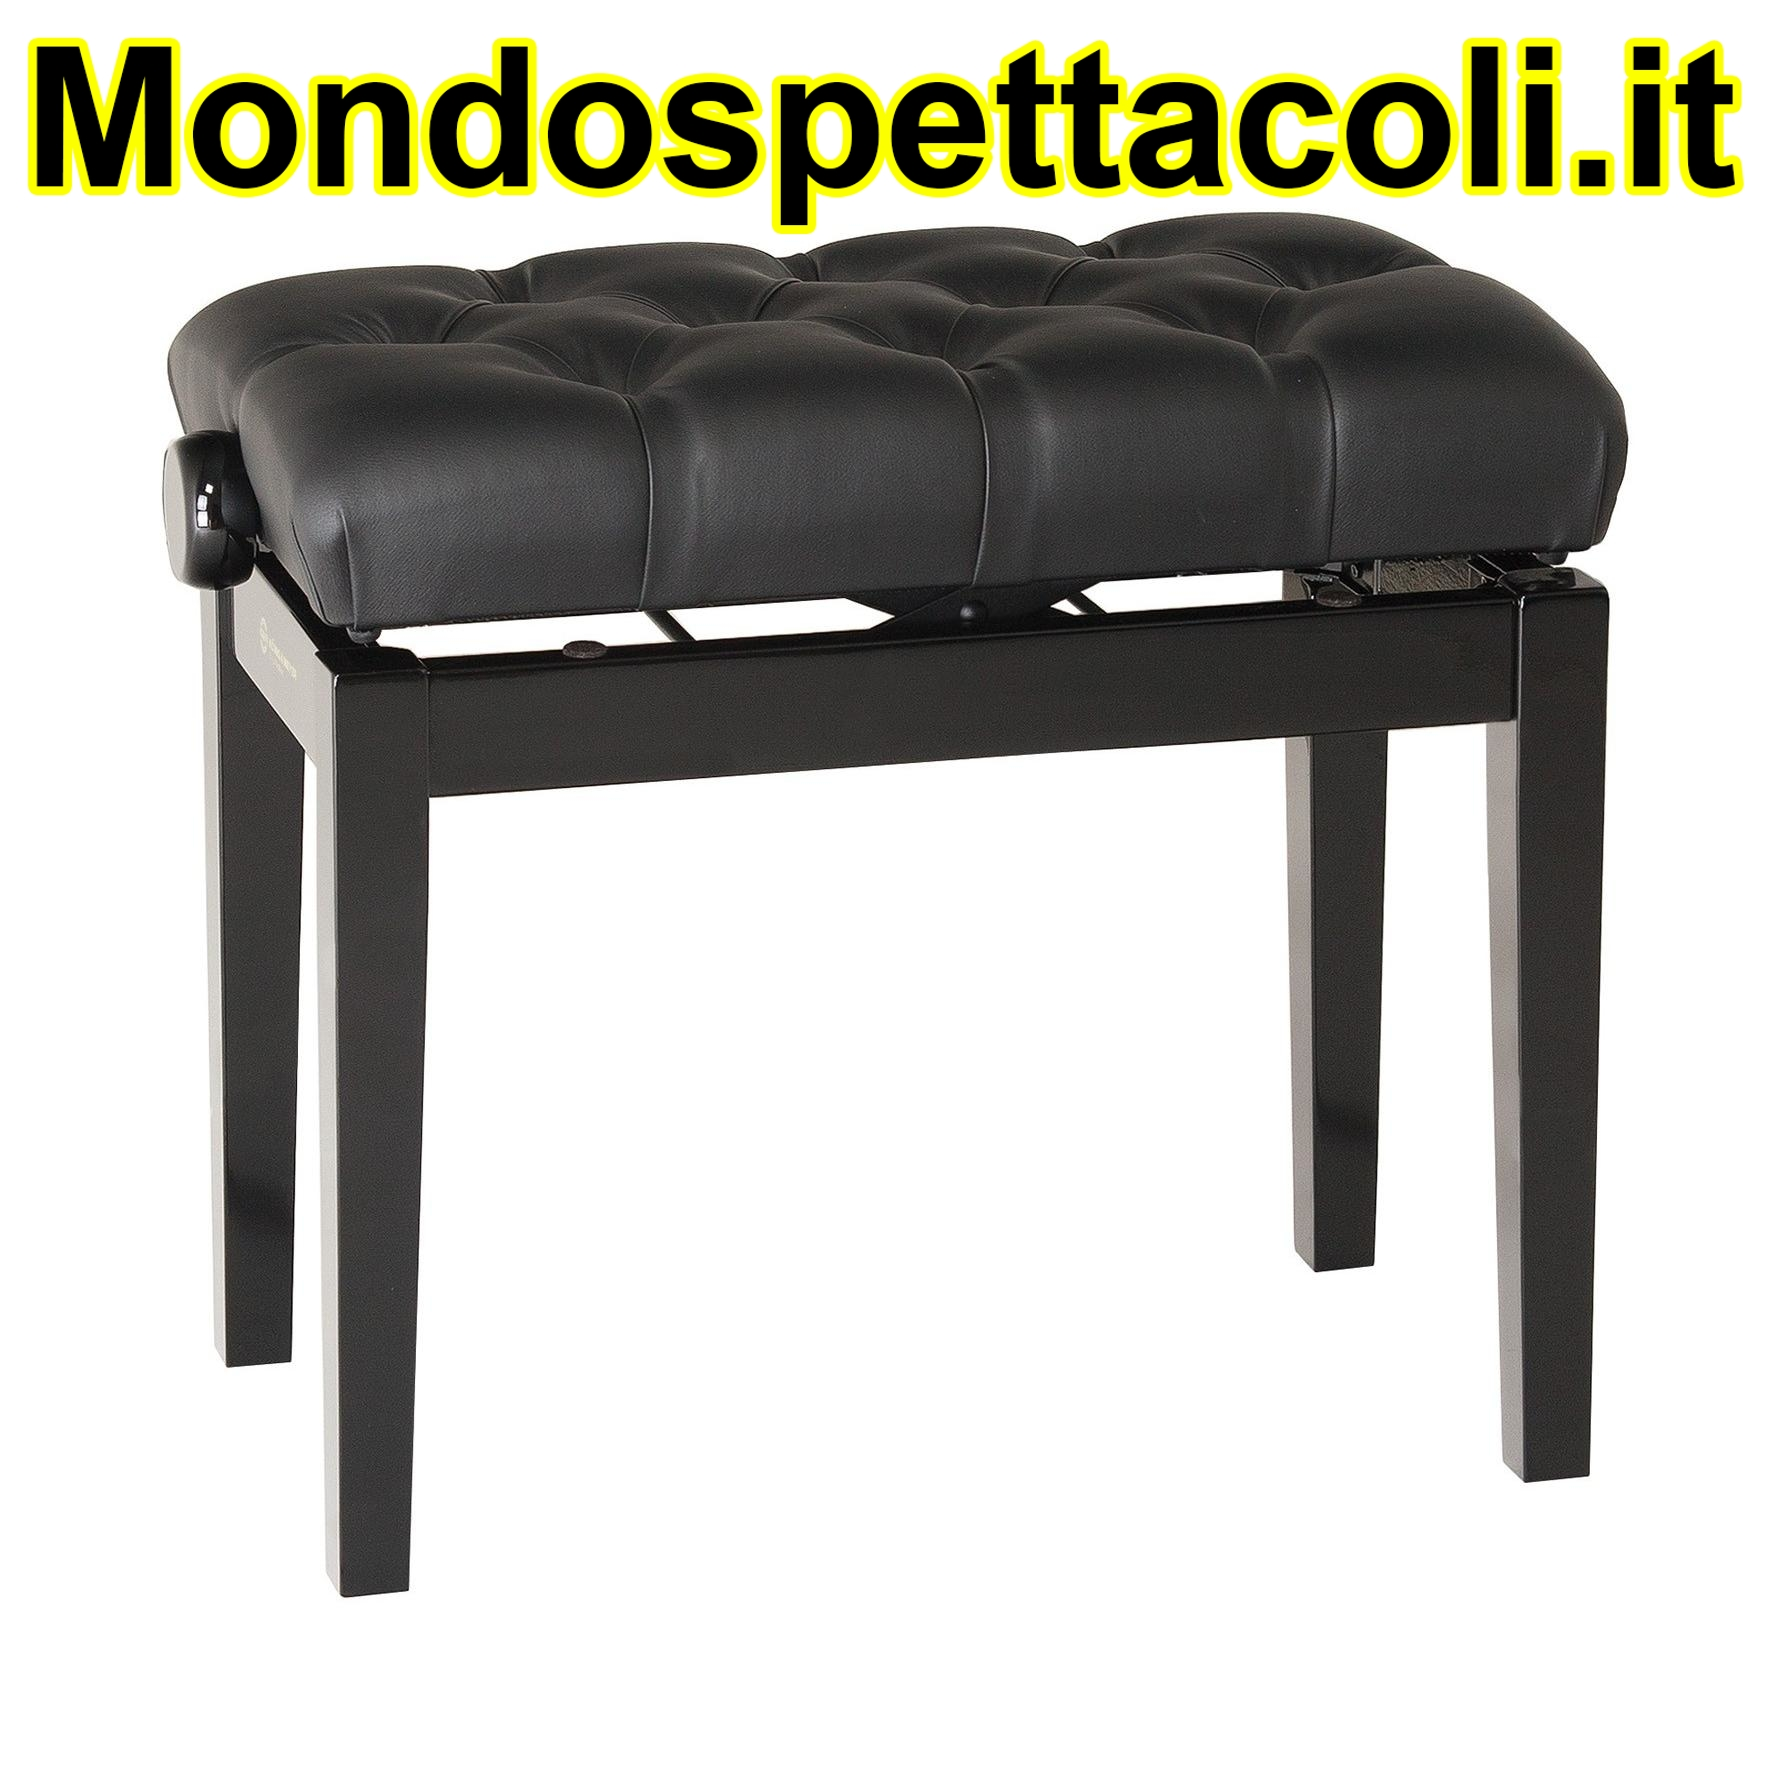 K&M bench black glossy finish, seat black imitation leather Piano bench with quilted seat cushion 13980-200-21